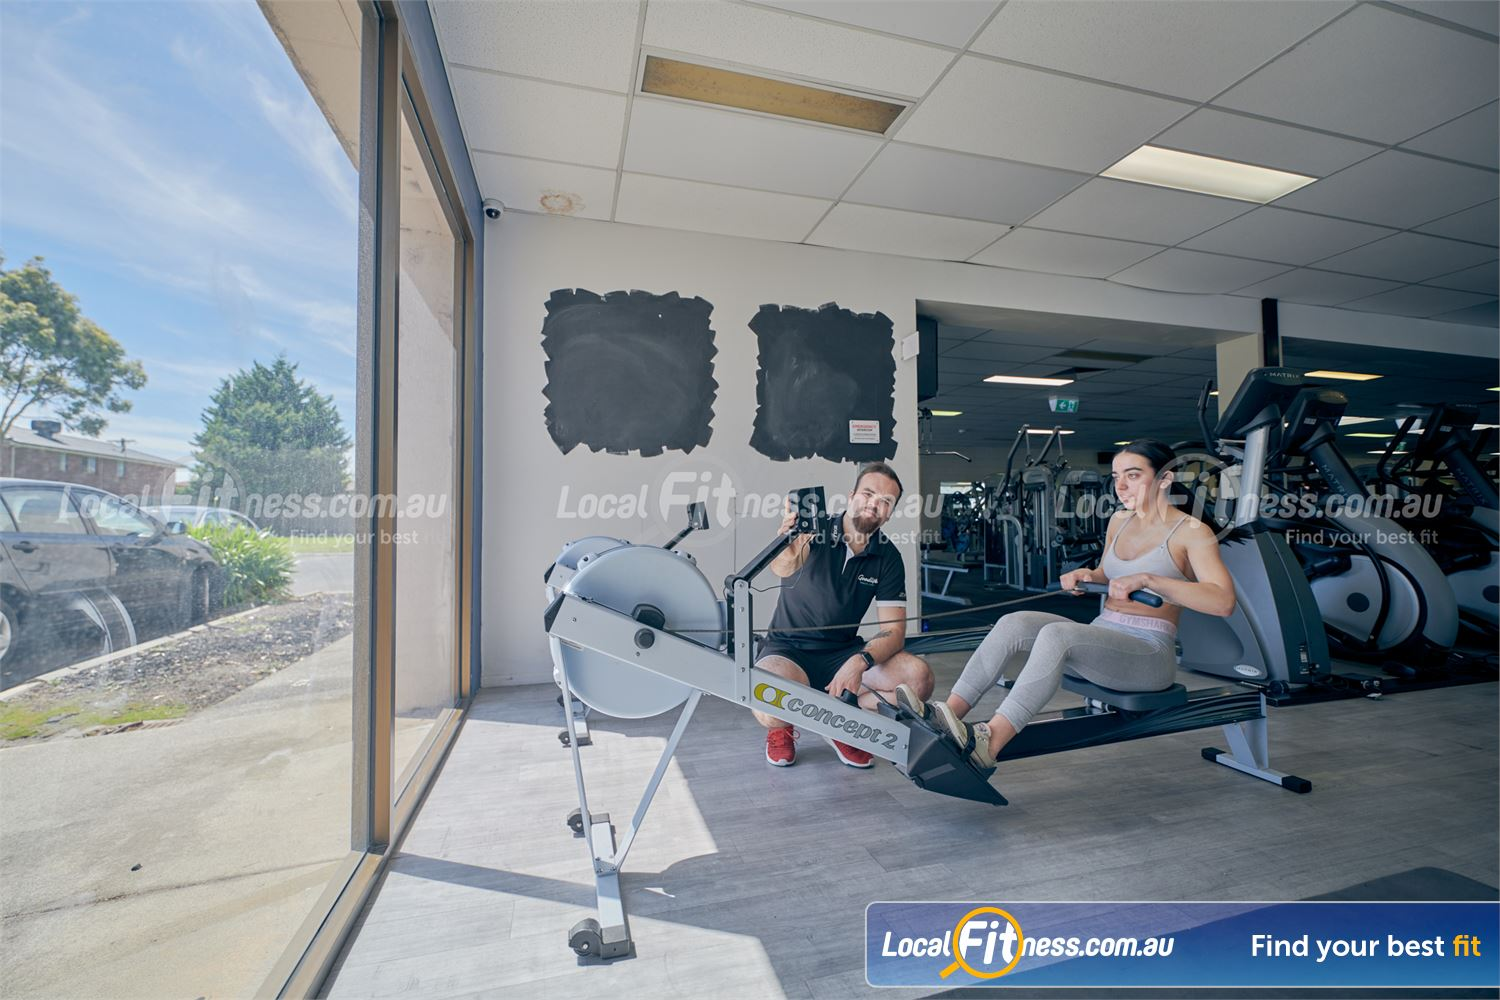 Goodlife Health Clubs Near Springvale South Our Dingley gym team can show you how to use our Concept 2 rowers.